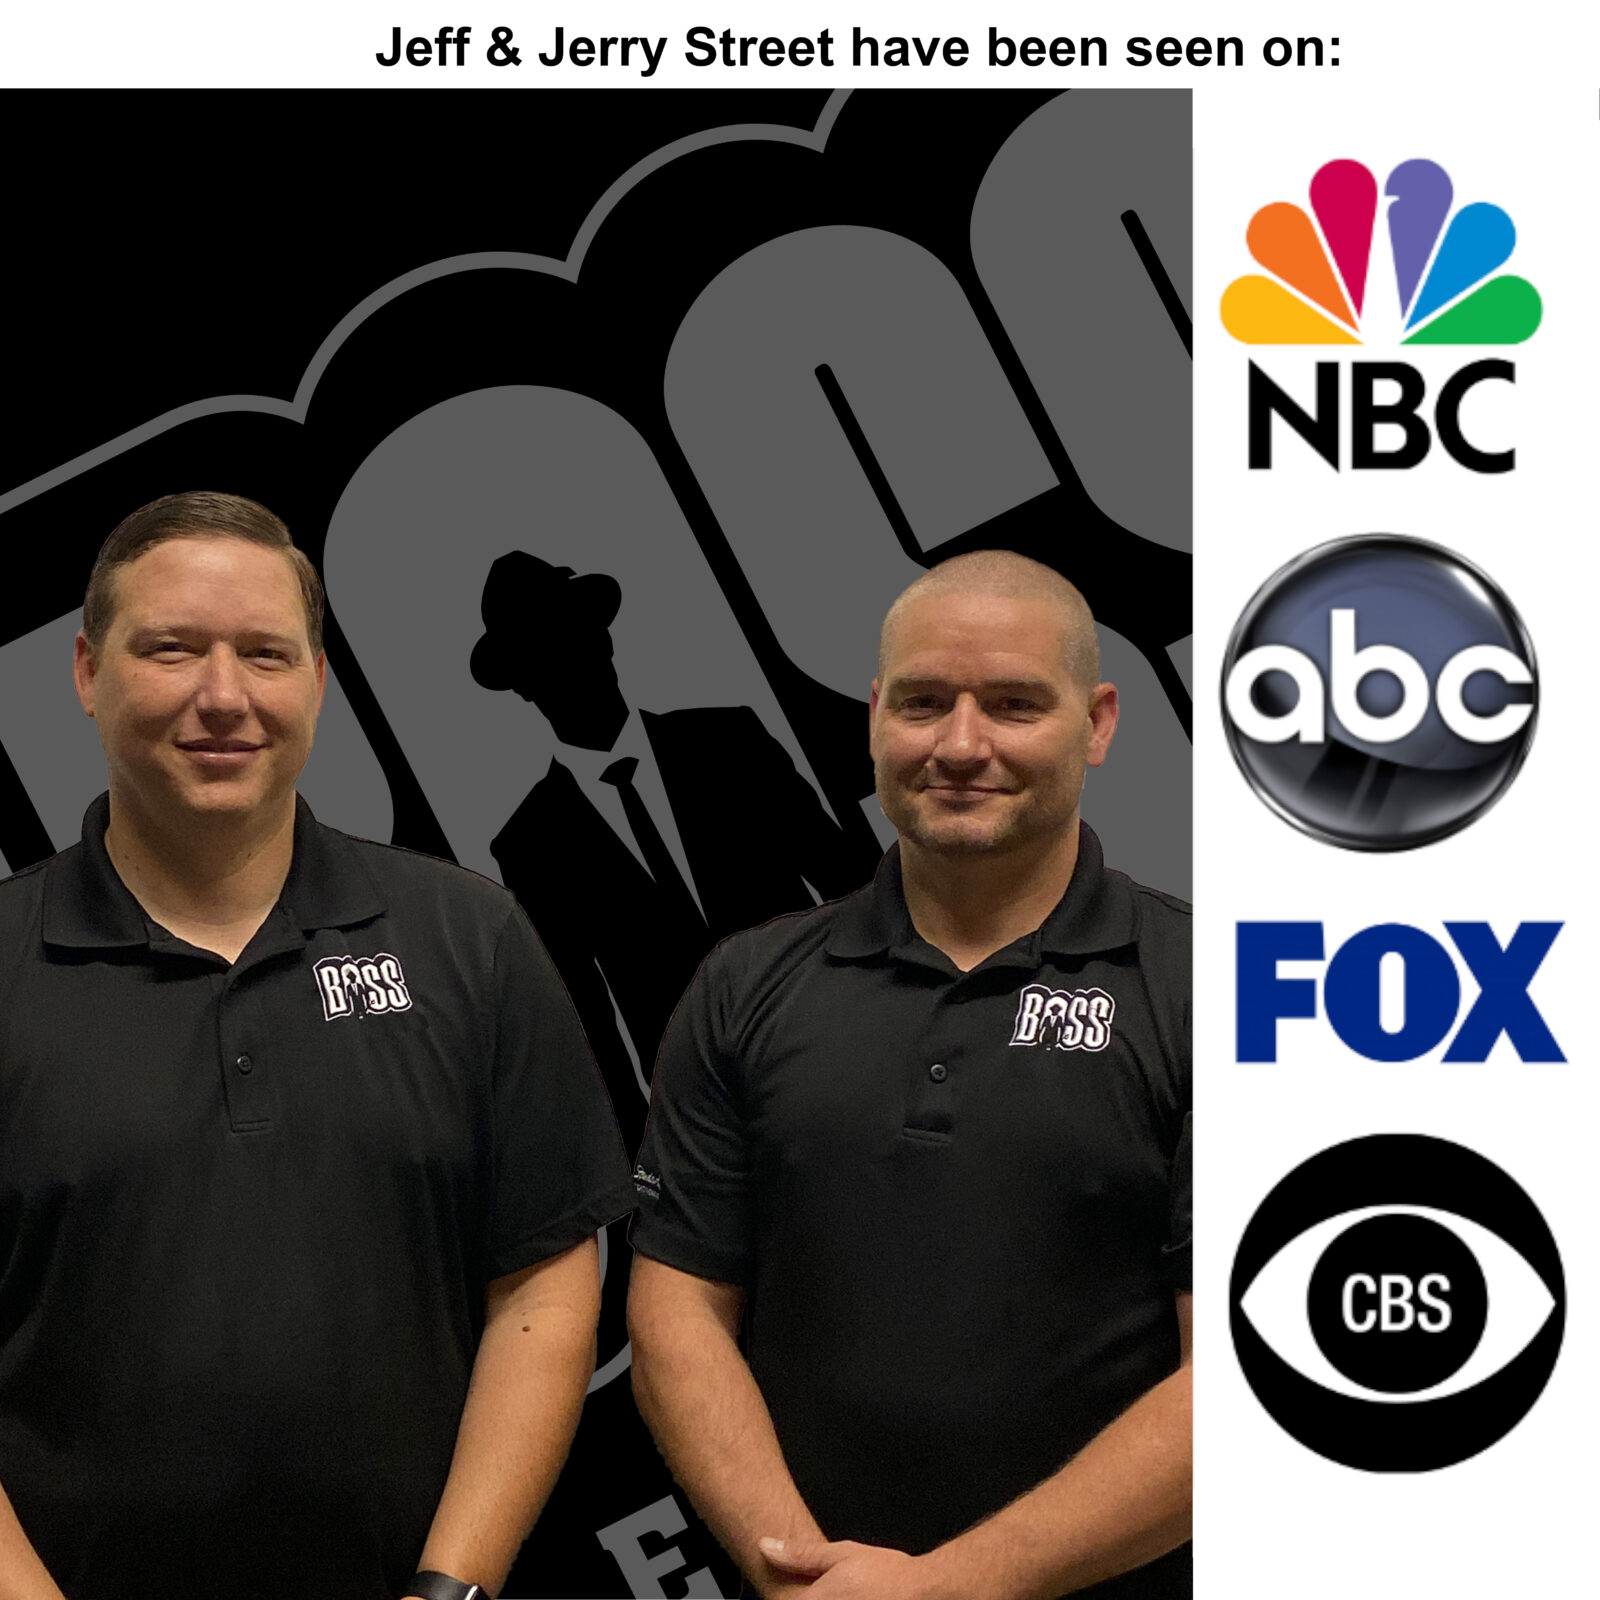 boss services Jeff and Jerry Street